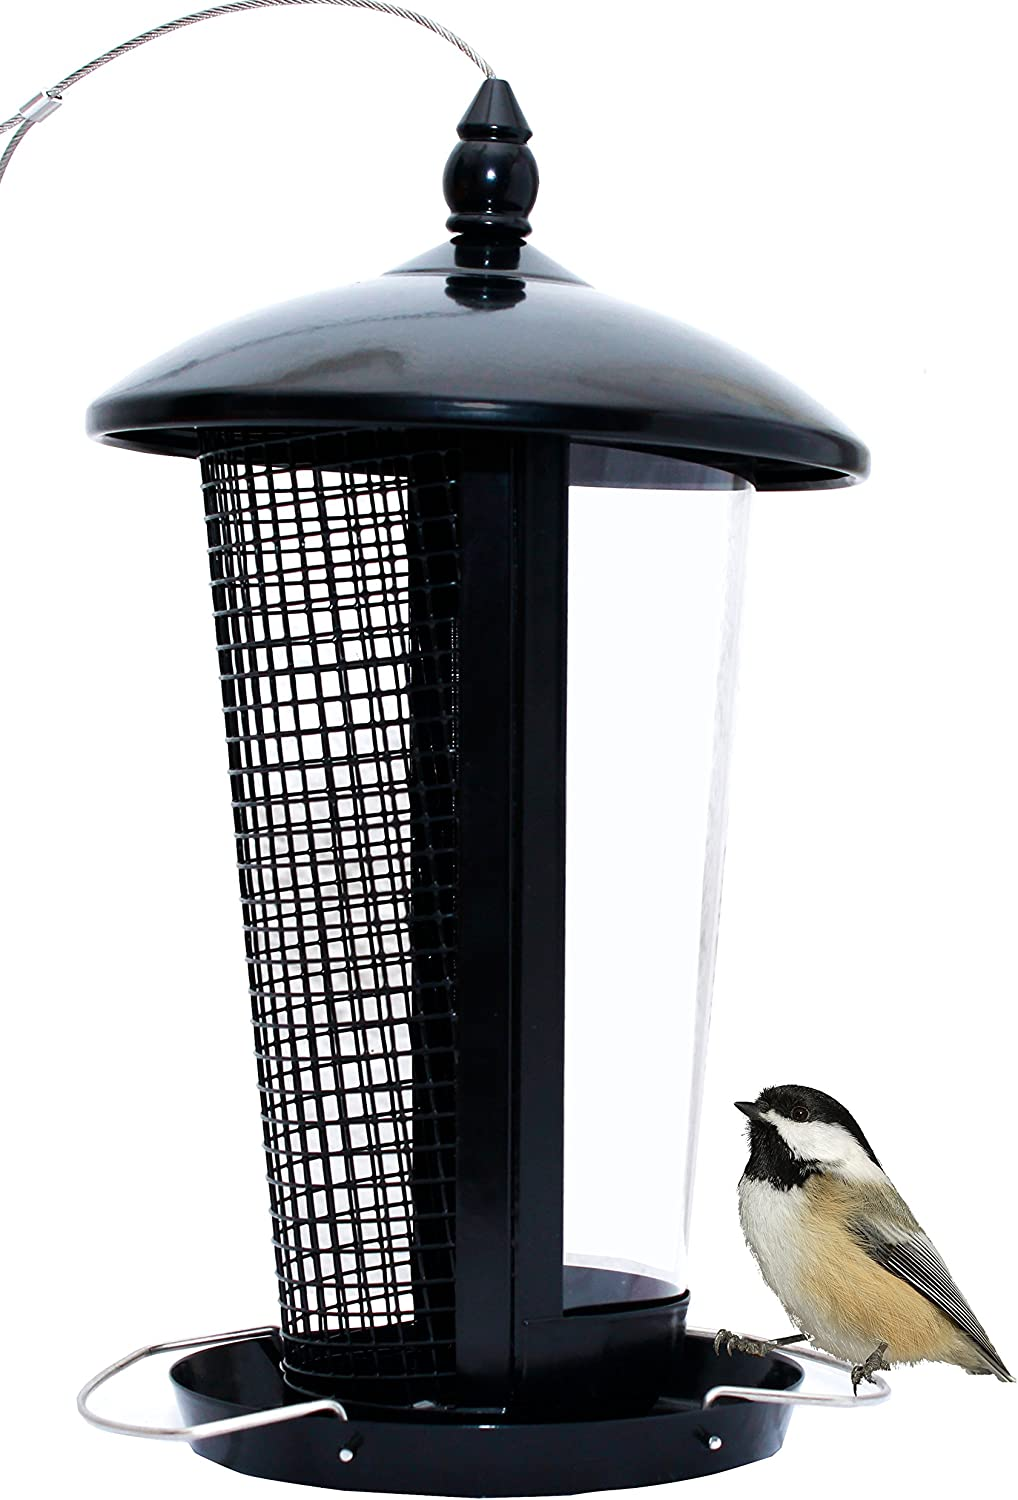 Prime Black Bird Feeder Attract More Wild Birds to Your House and Outdoor Garden Designed for All Seeds, Peanuts and Fruits Types Allows Large, Medium and Small Birds Easy to Clean and Fill Outside Hanging Decorative Feeders. Great Gift & Fun Idea